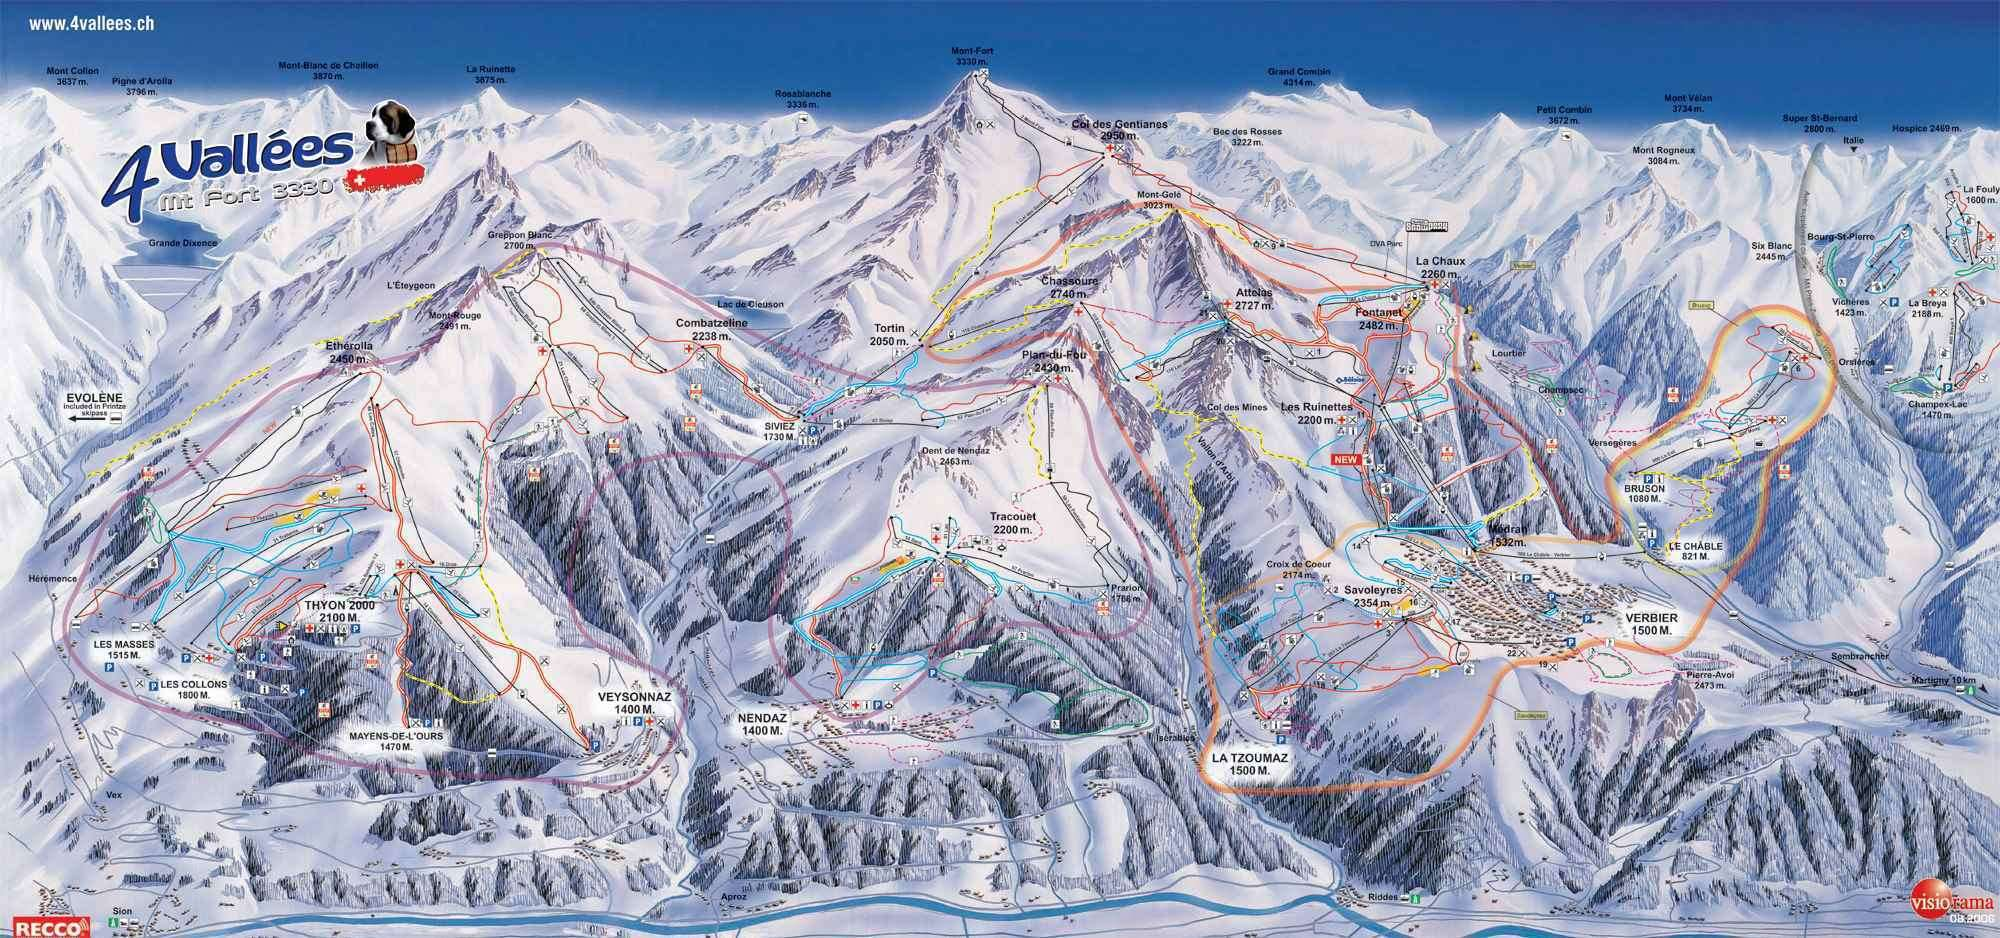 Verbier 4 Valleys Piste Map